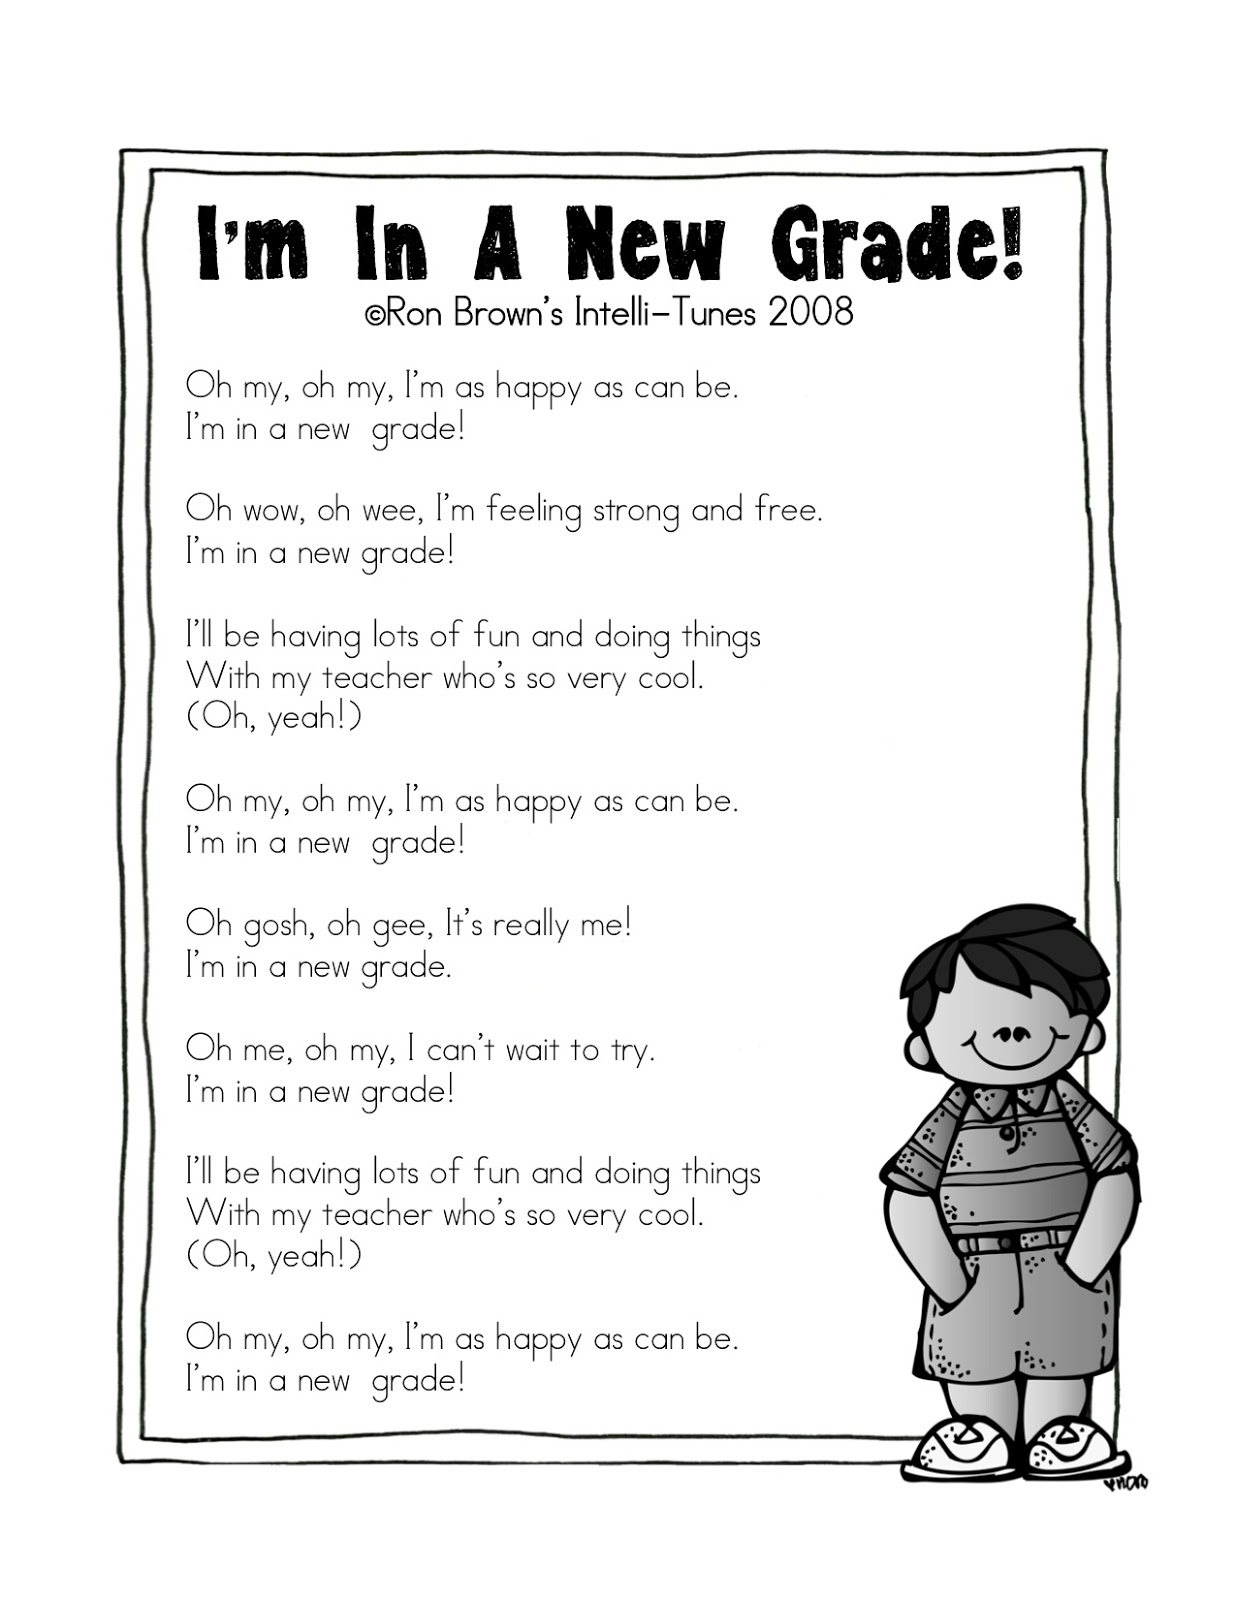 first grade by ron koertge poem First grade by ron koertge poem analysis harvard case study solution and analysis of reading the harvard case study: to have a complete understanding of the case, one should focus on case reading.